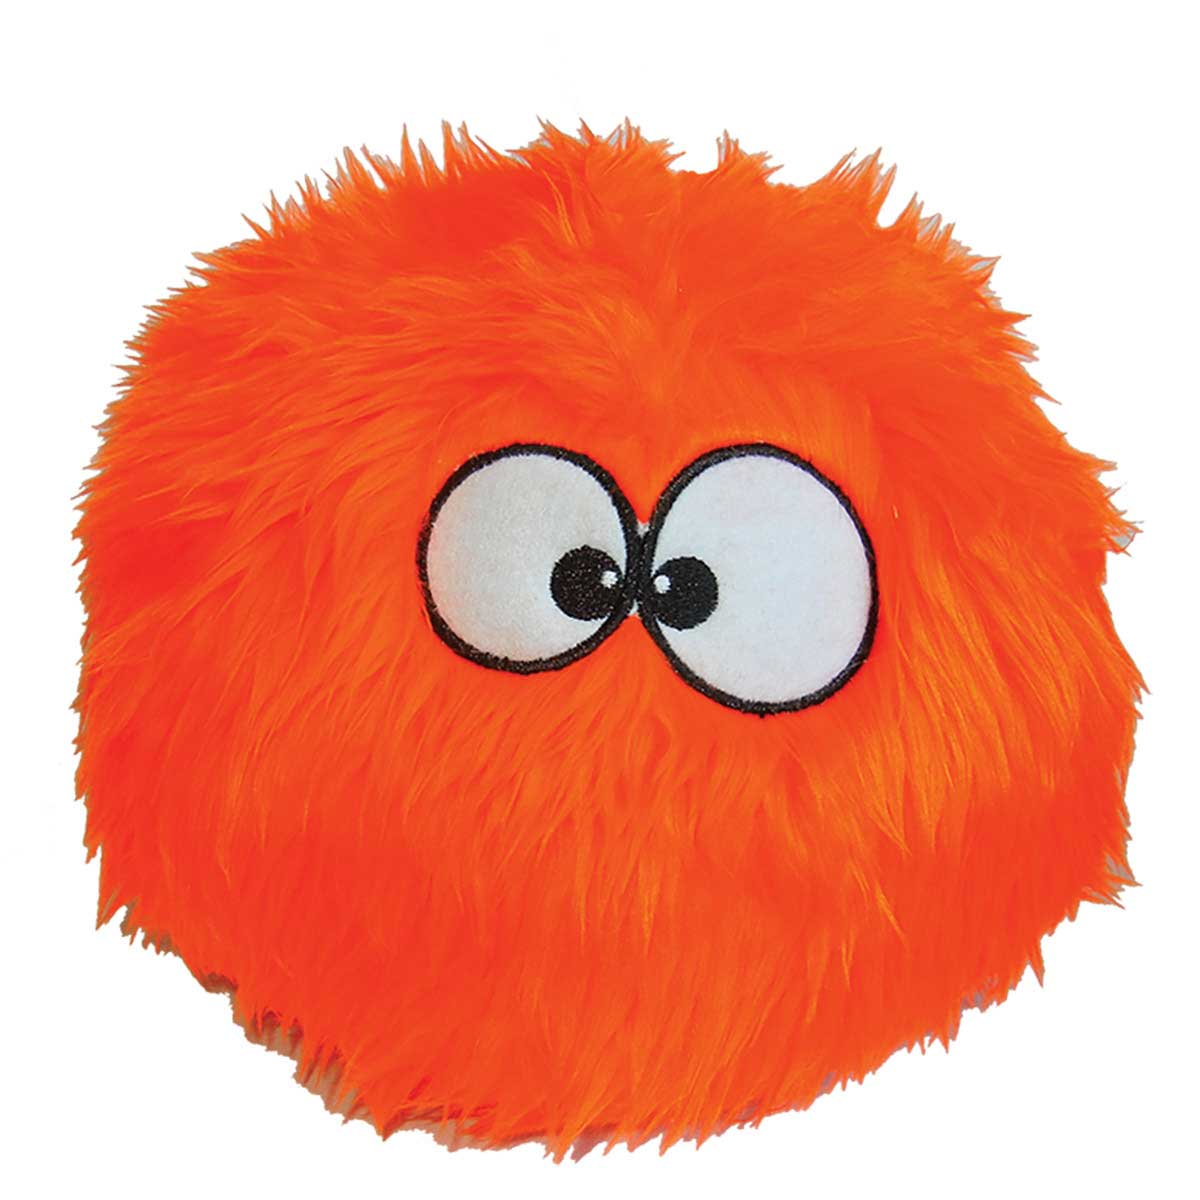 goDog Small Orange Furballz 4.5 inch Dog Toy